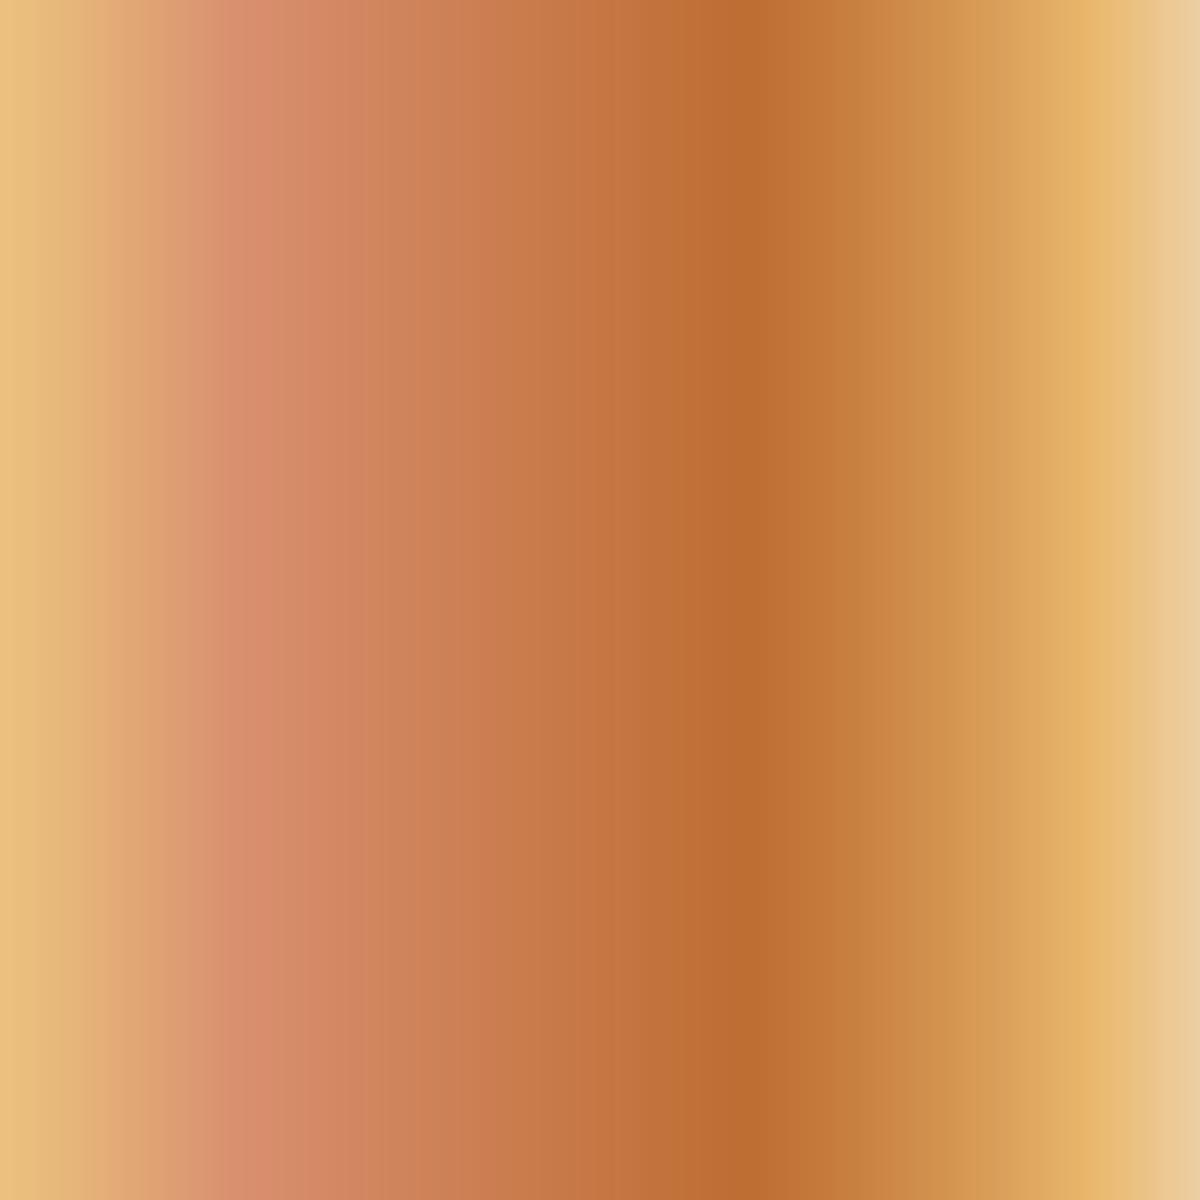 FolkArt ® Brushed Metal™ Acrylic Paint - Rose Gold, 2 oz.